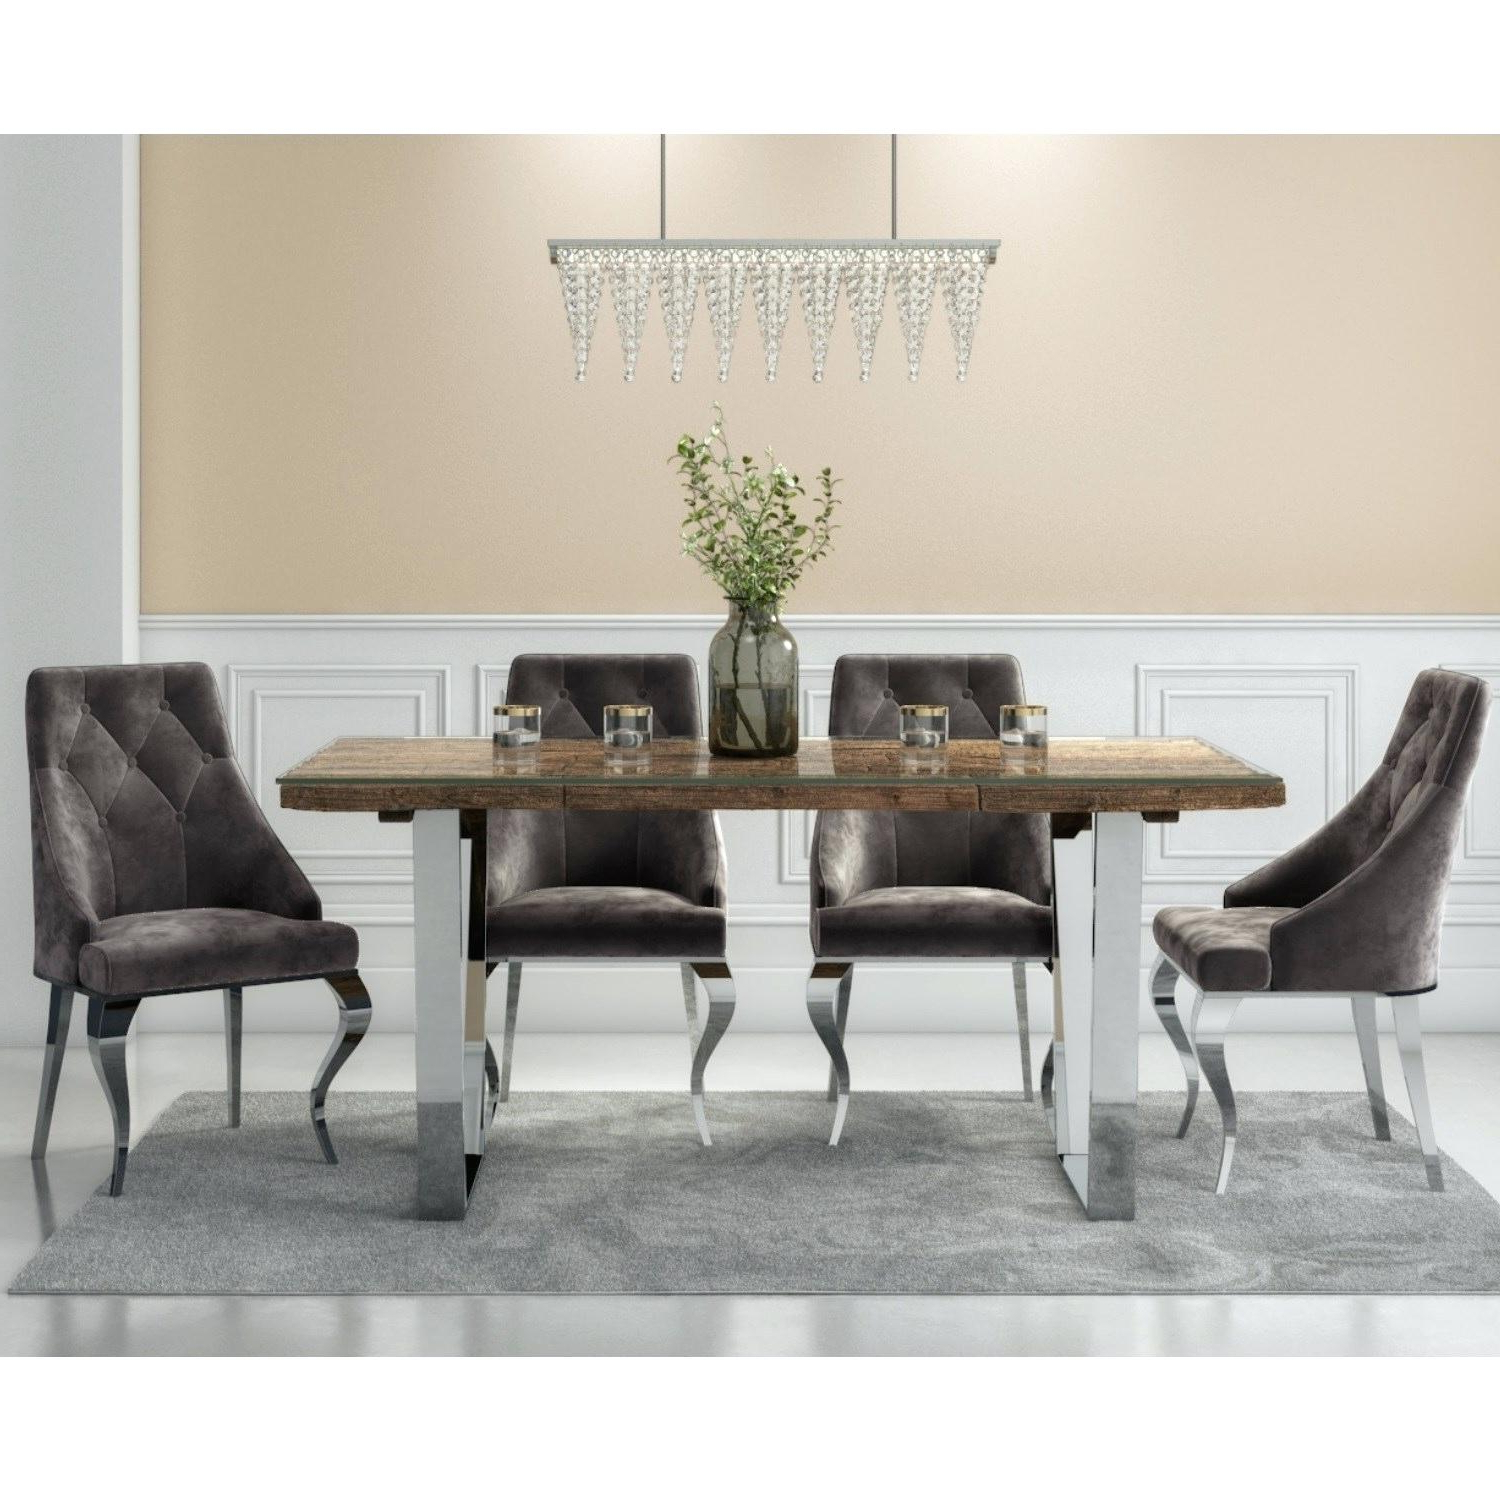 Retro Round Glasstop Dining Tables Intended For Most Recently Released Glass Top Dining Set – Babyde (View 20 of 30)